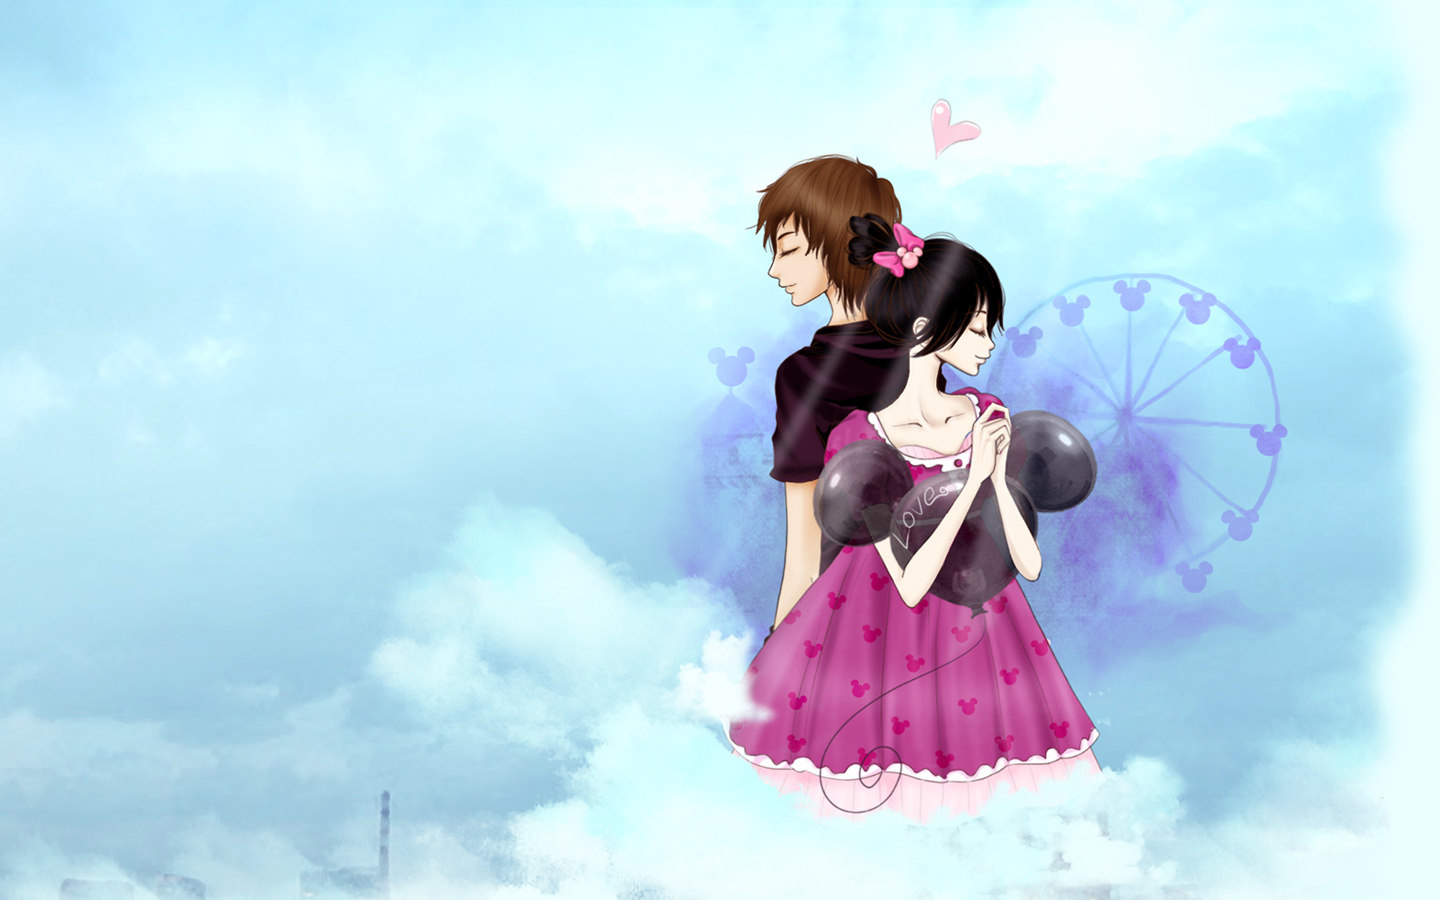 Cute Animated Dolls Wallpapers 温馨卡通情侣桌面壁纸大全 温馨卡通情侣桌面壁纸大全专辑下载 找素材网